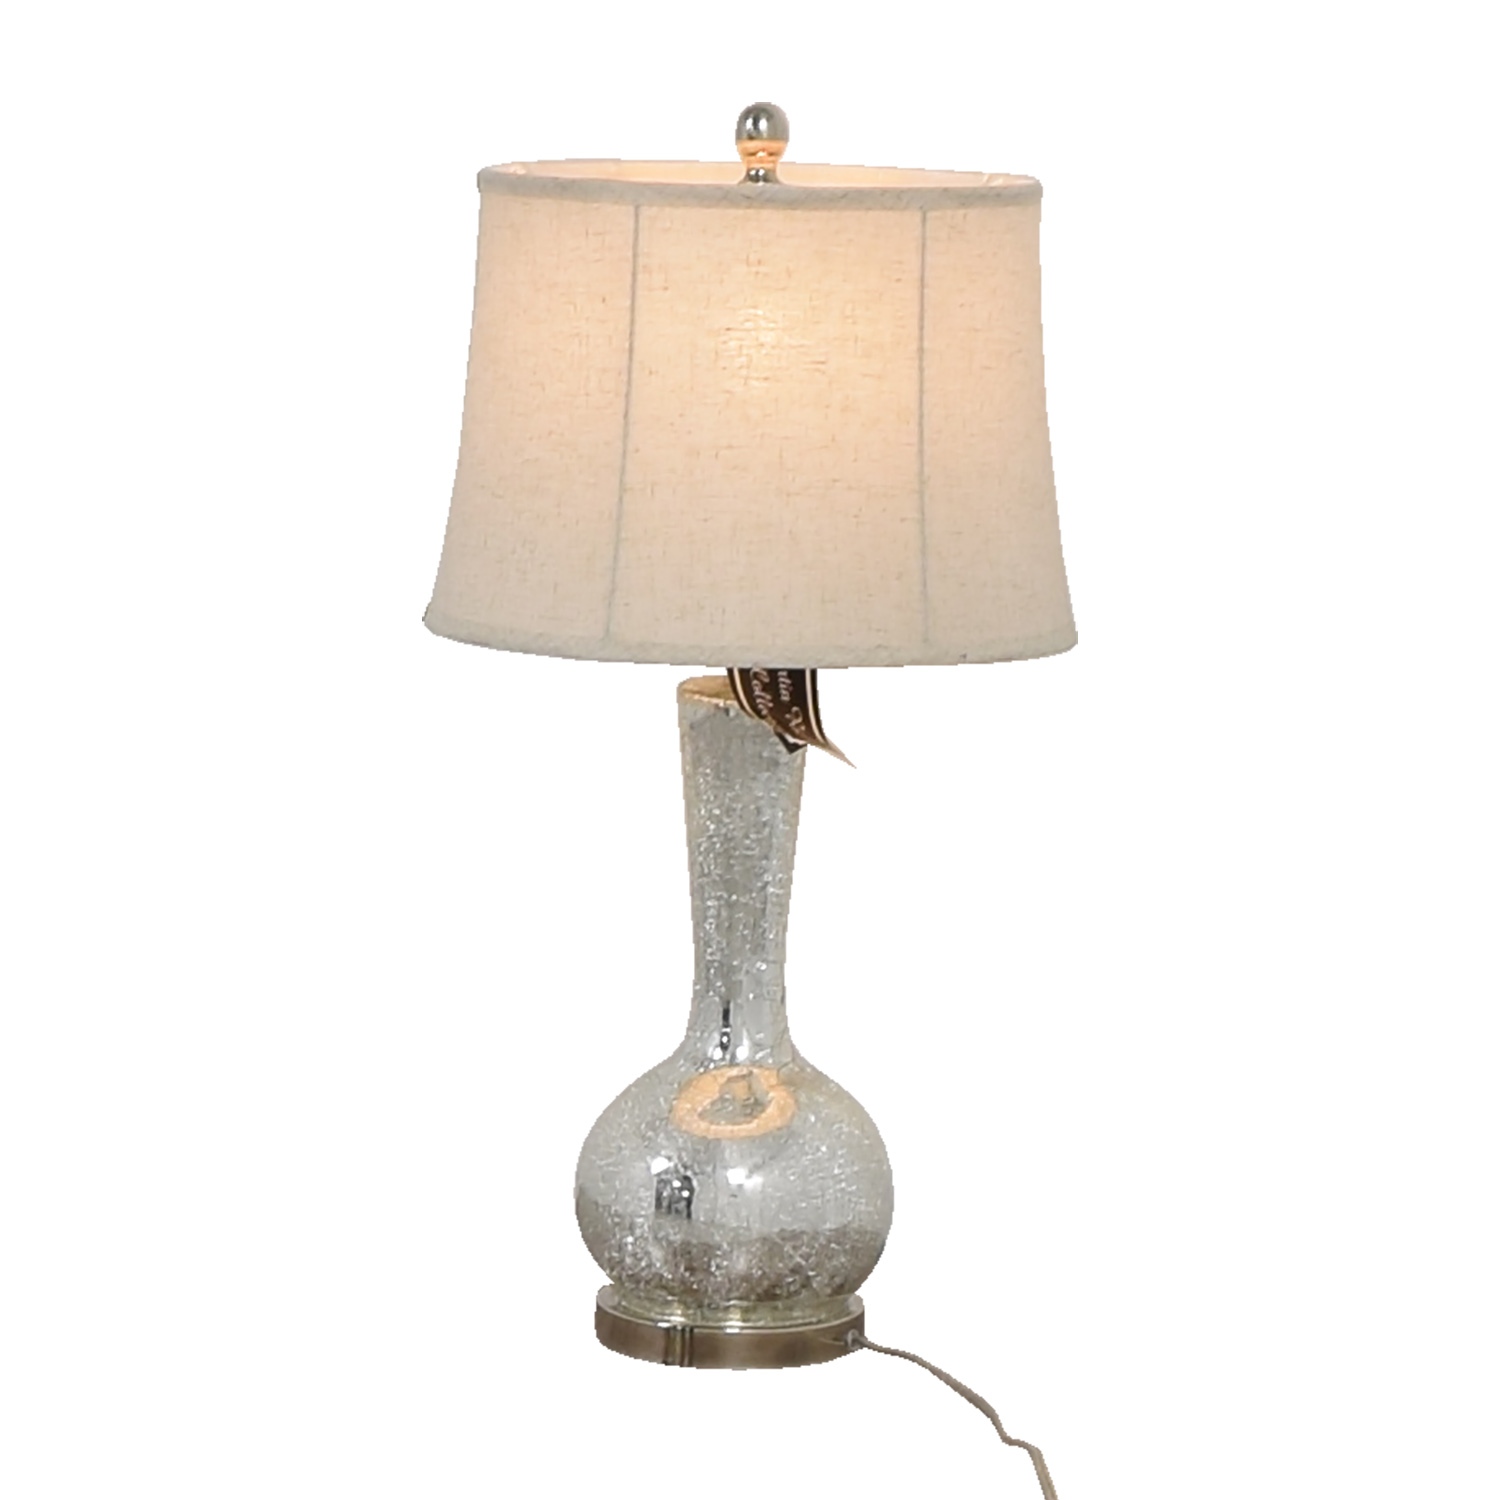 ... Martin Richards Crackle Glass Table Lamp / Decor ...